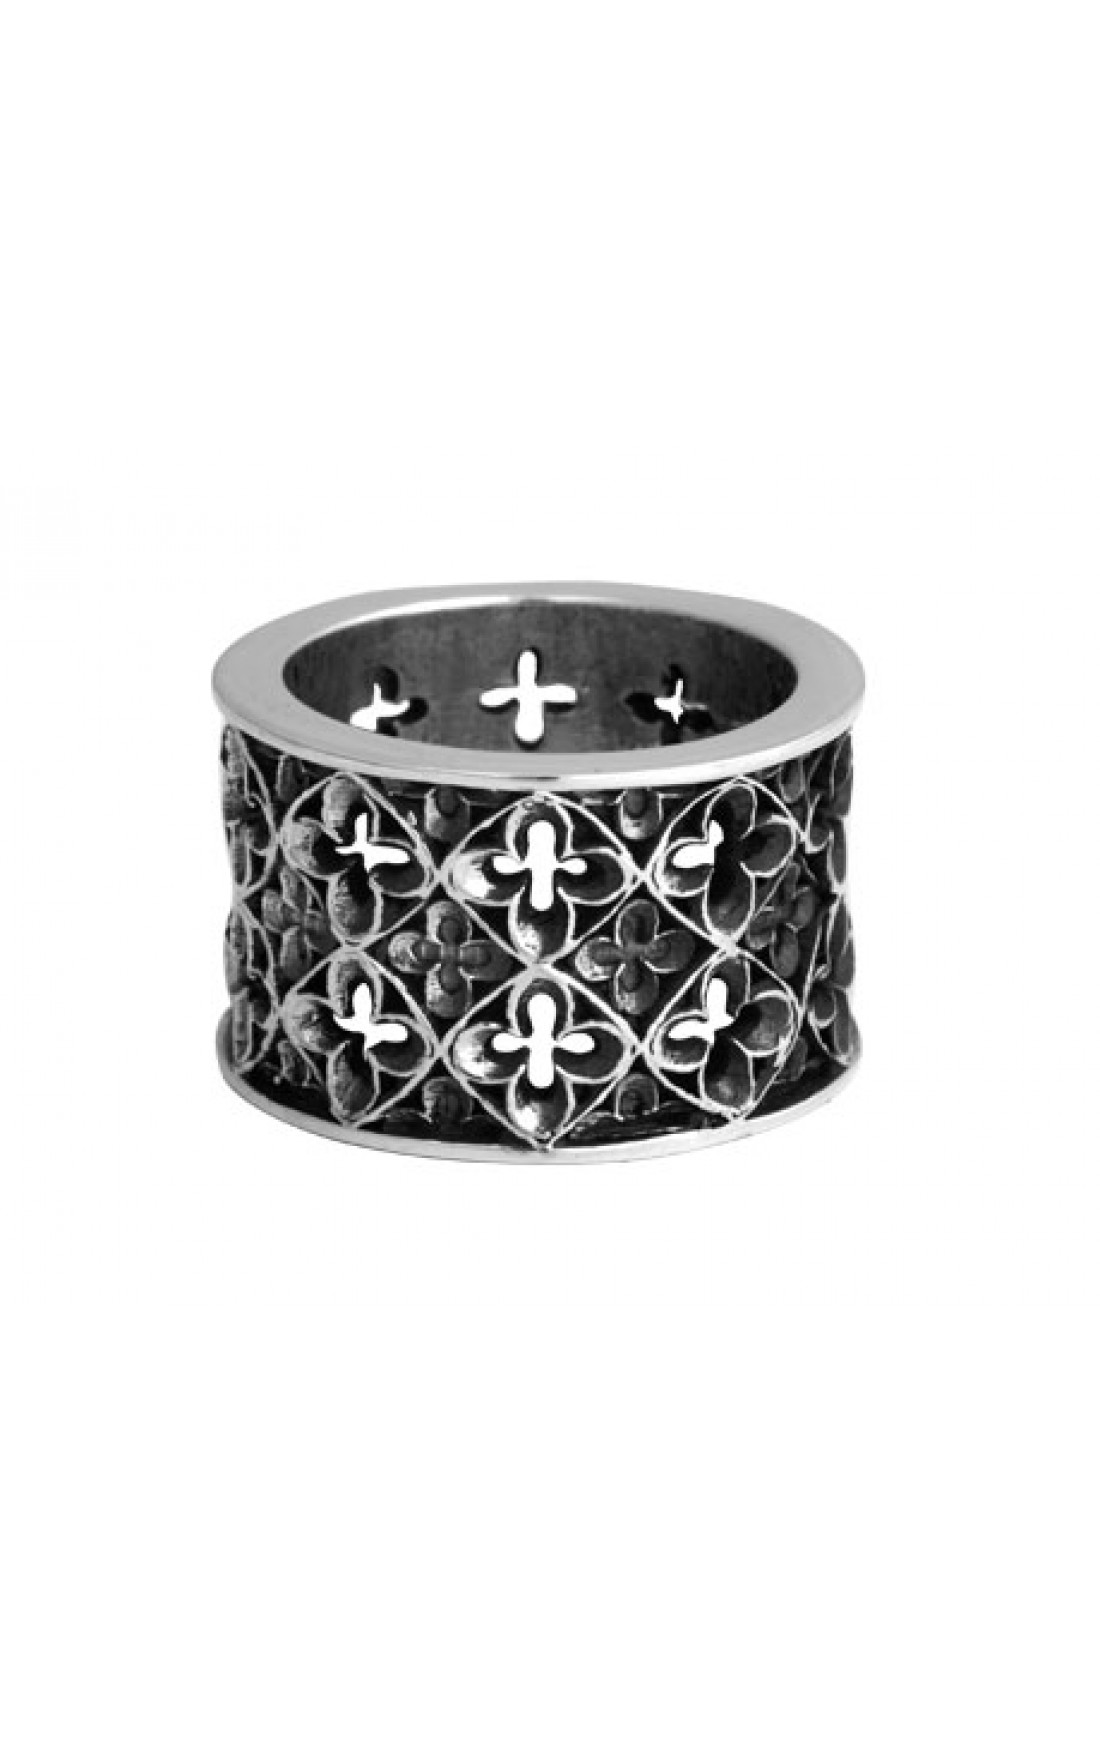 King Baby - Wide Relic Band Ring (K20-5034)